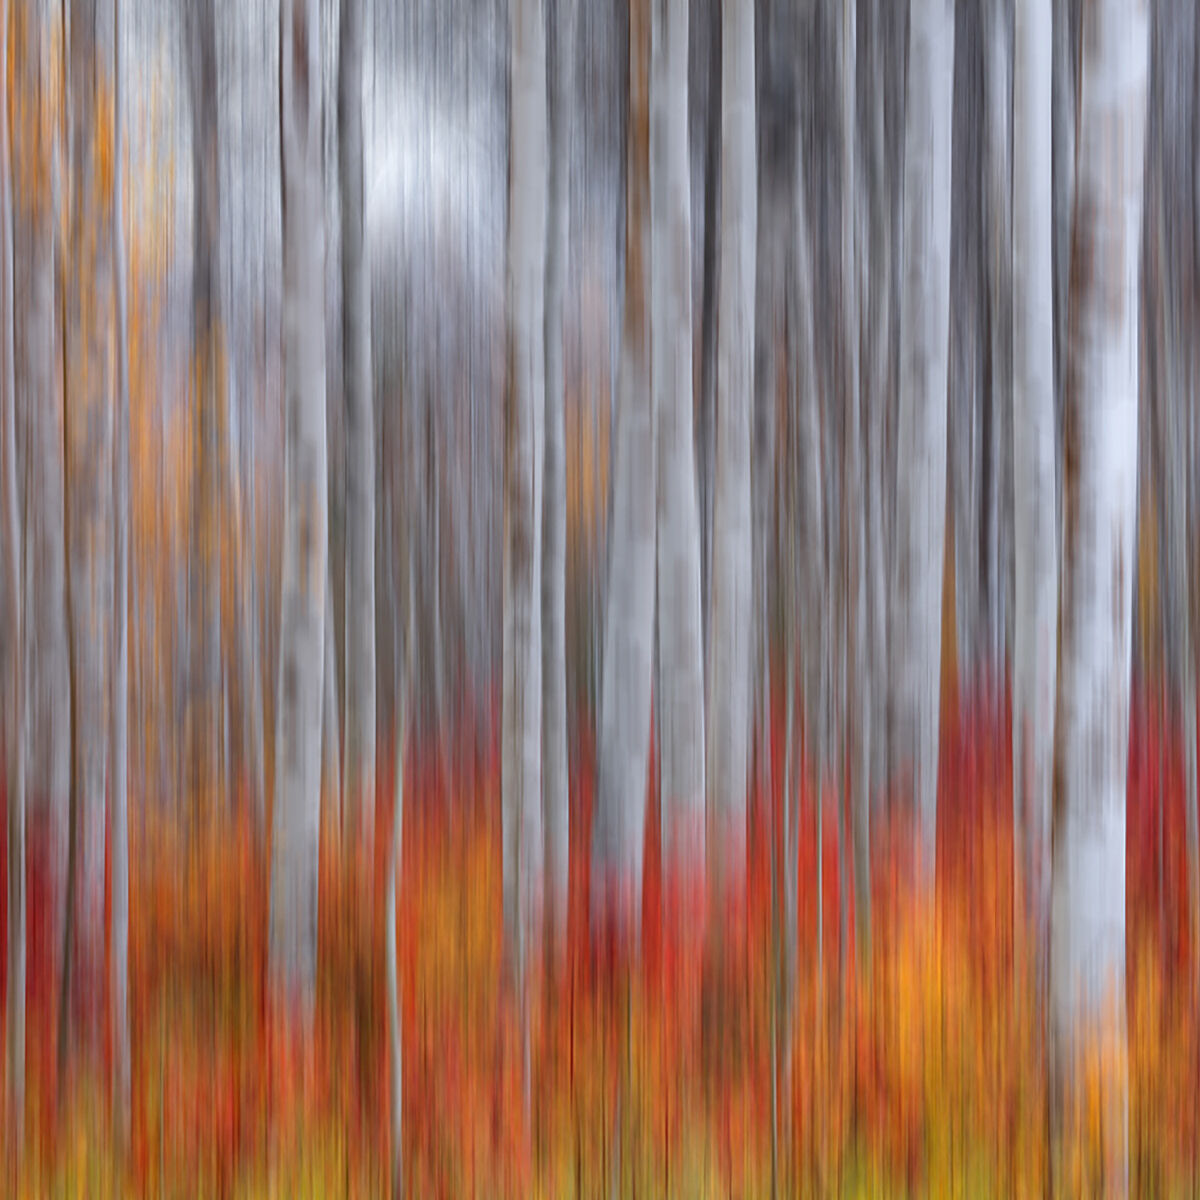 A photograph of aspen trees captured using intentional camera movement titled Brushed.